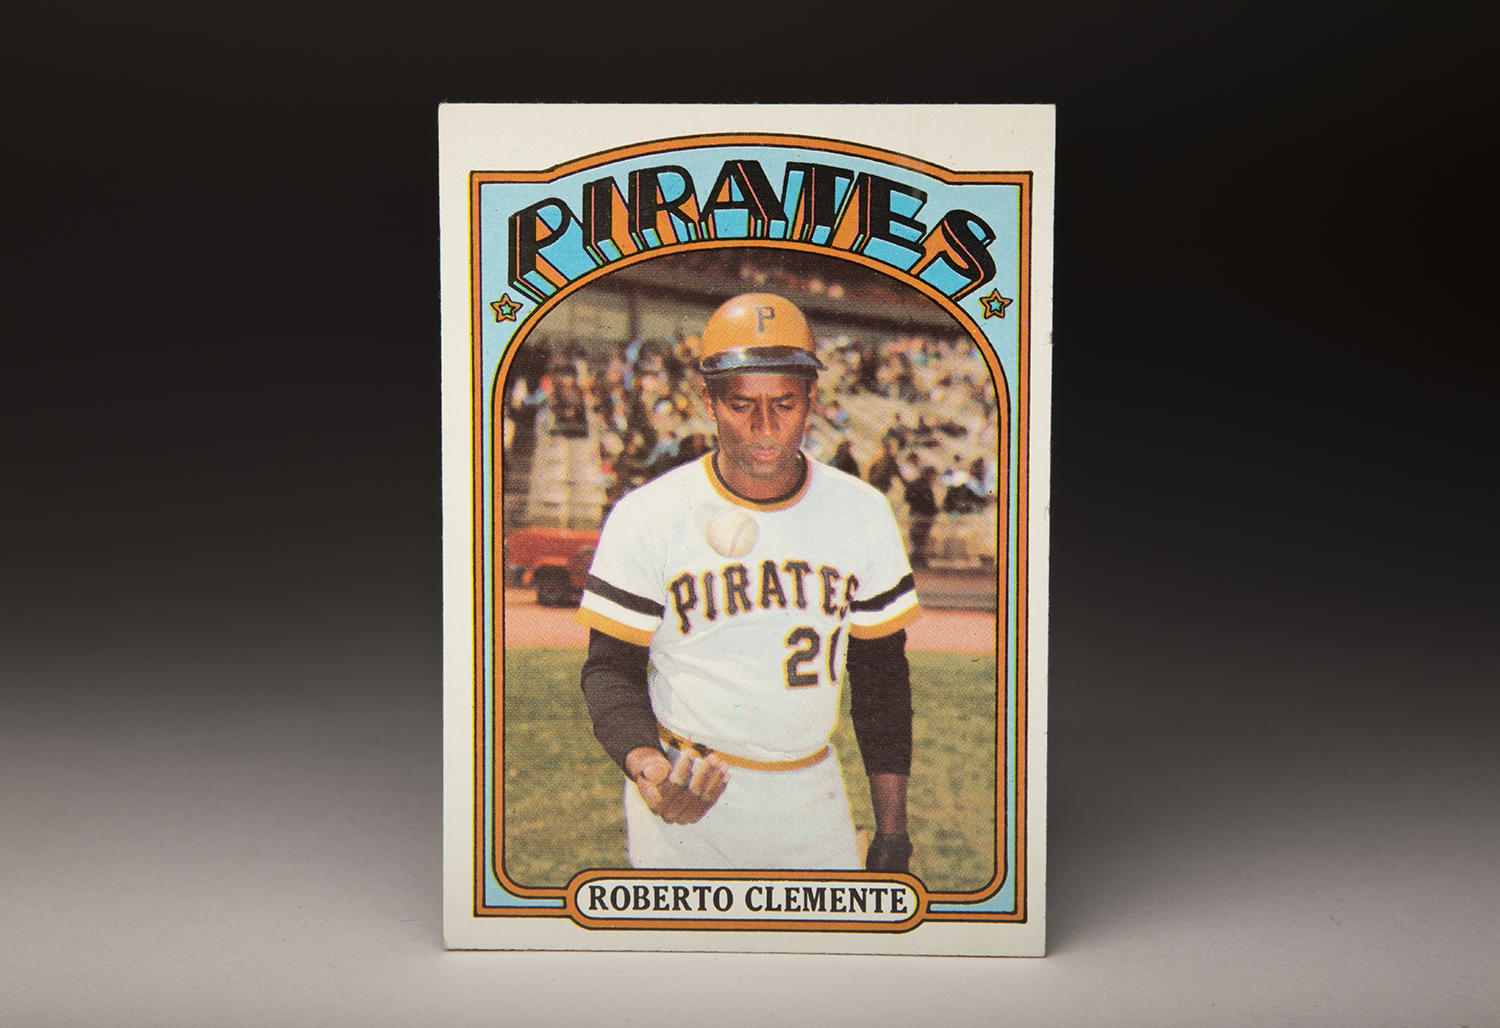 On Roberto Clemente's 1972 Topps card, the photographer captures him in a candid moment, tossing a baseball during a pregame moment at Shea Stadium. (By Photographer Milo Stewart Jr. / National Baseball Hall of Fame and Museum)